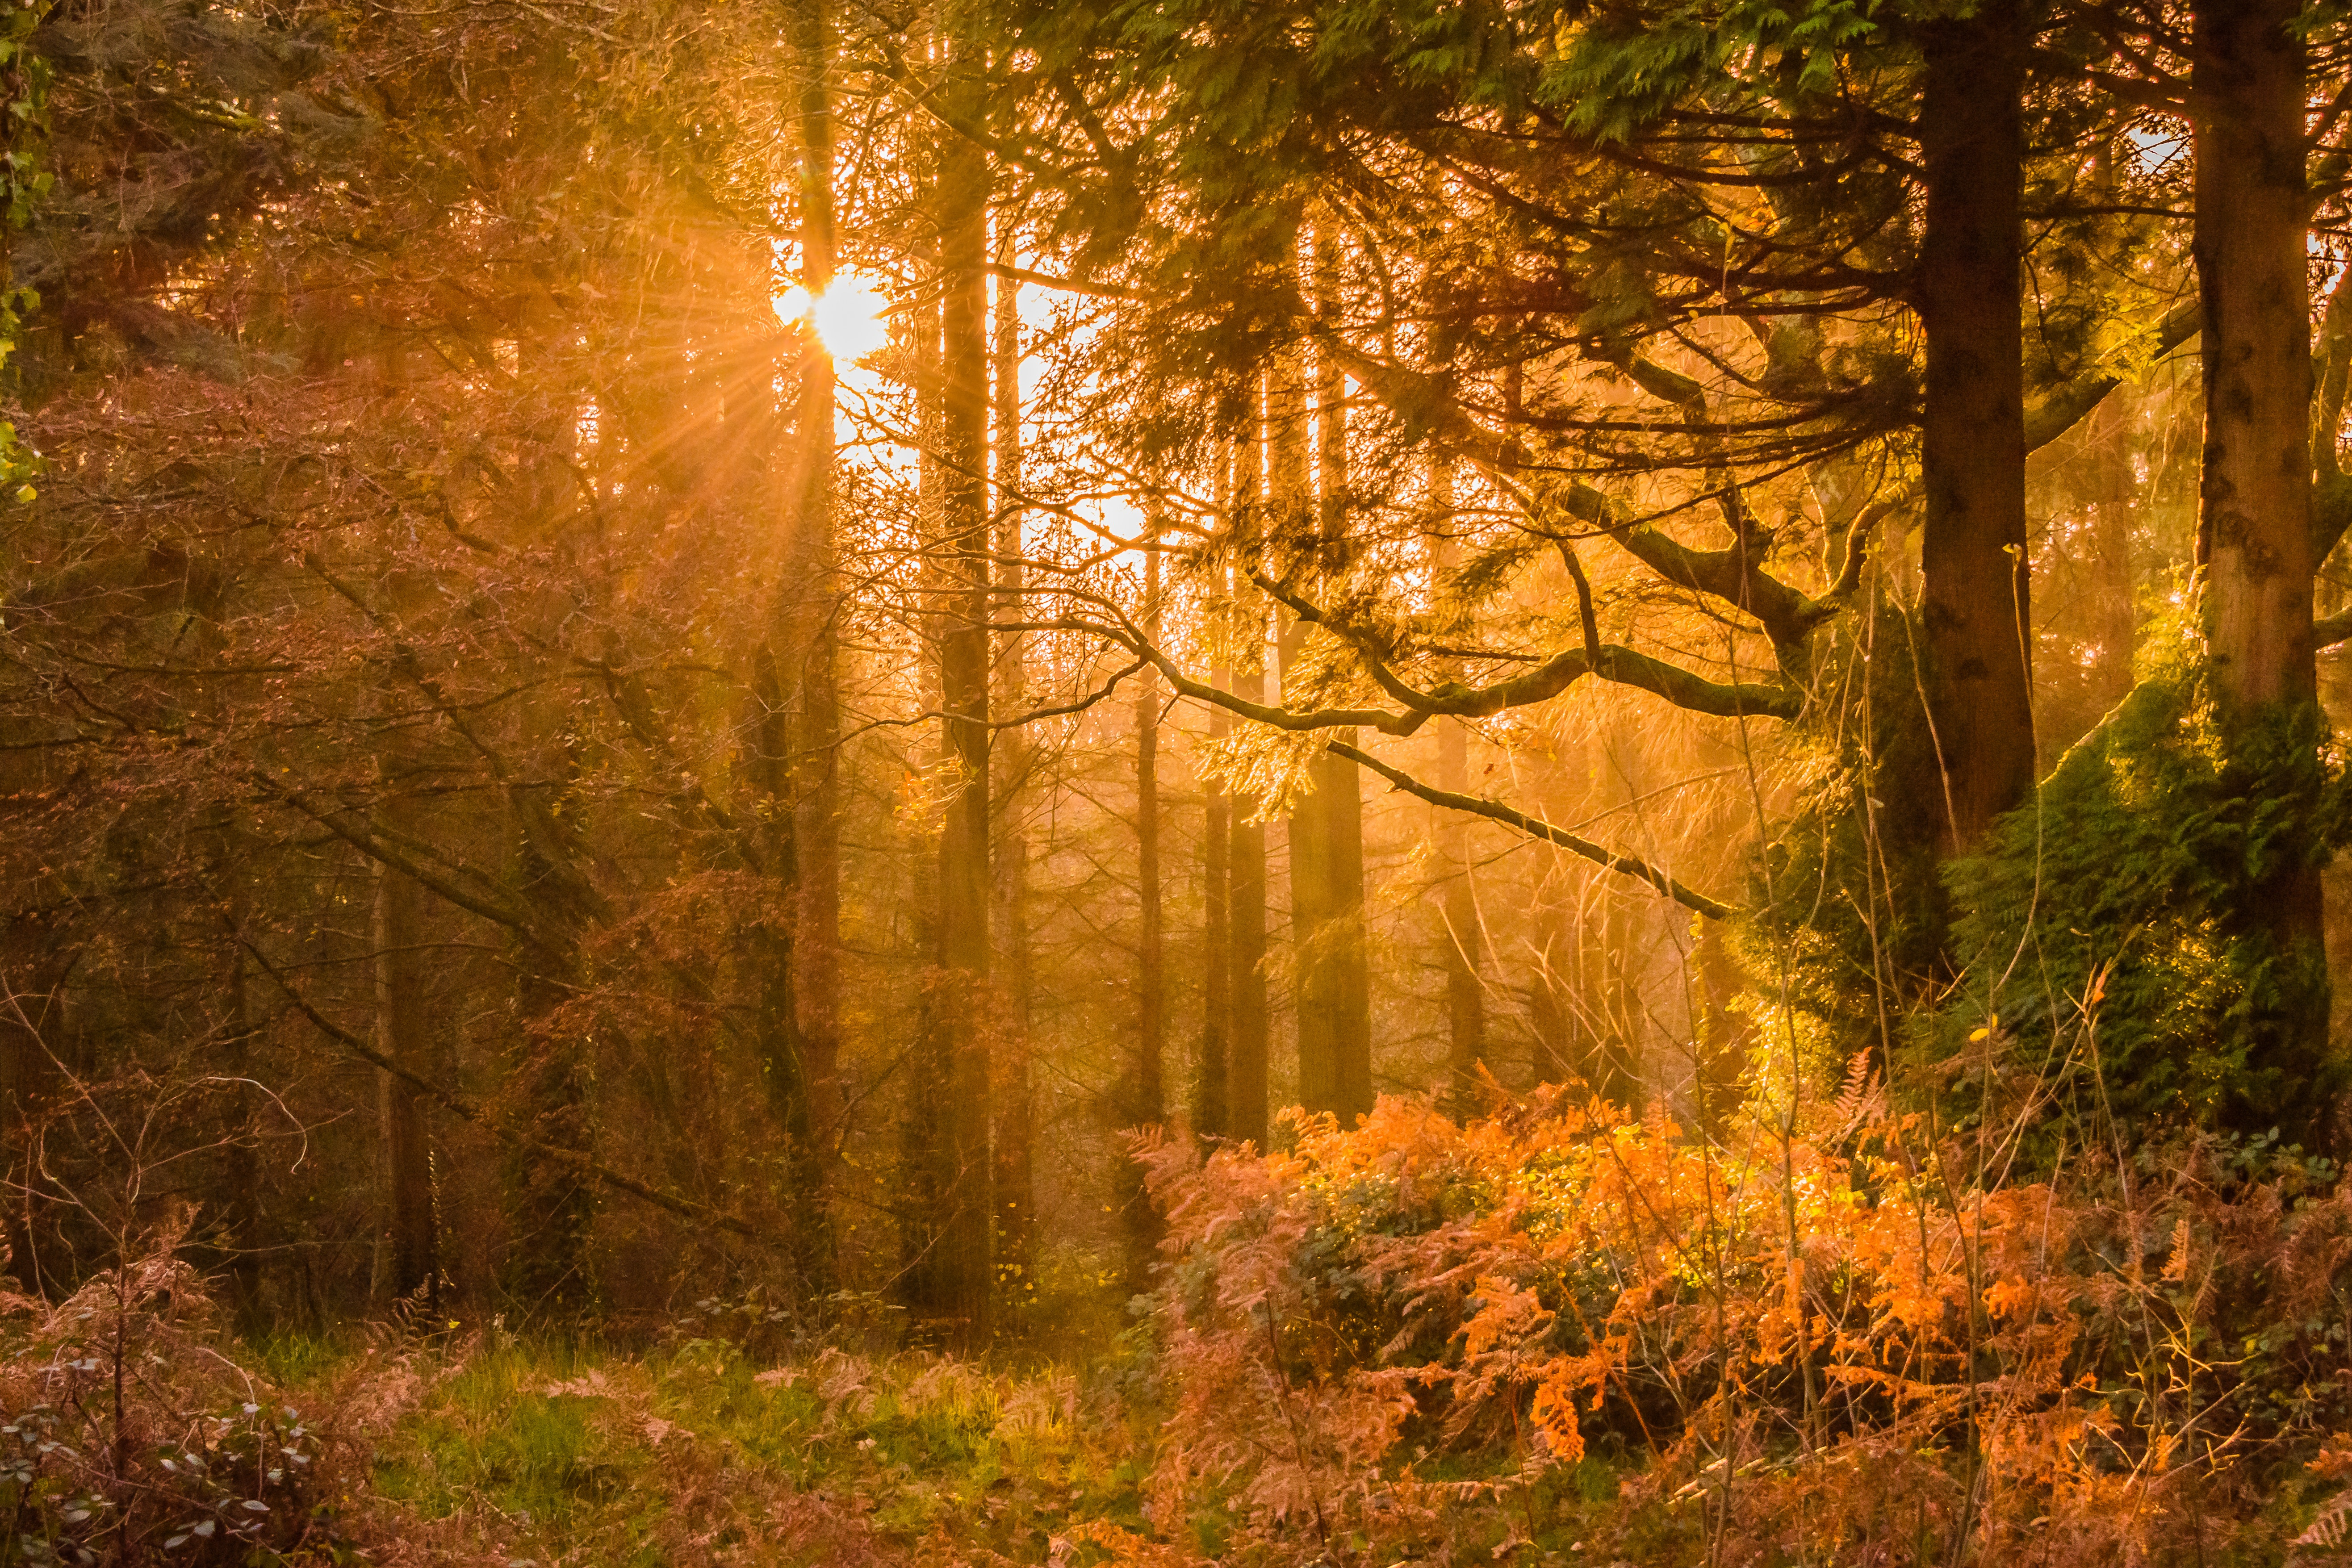 Yellow Sunset Rays Passing Through the Trees, Autumn, Outdoors, Weather, Trees, HQ Photo